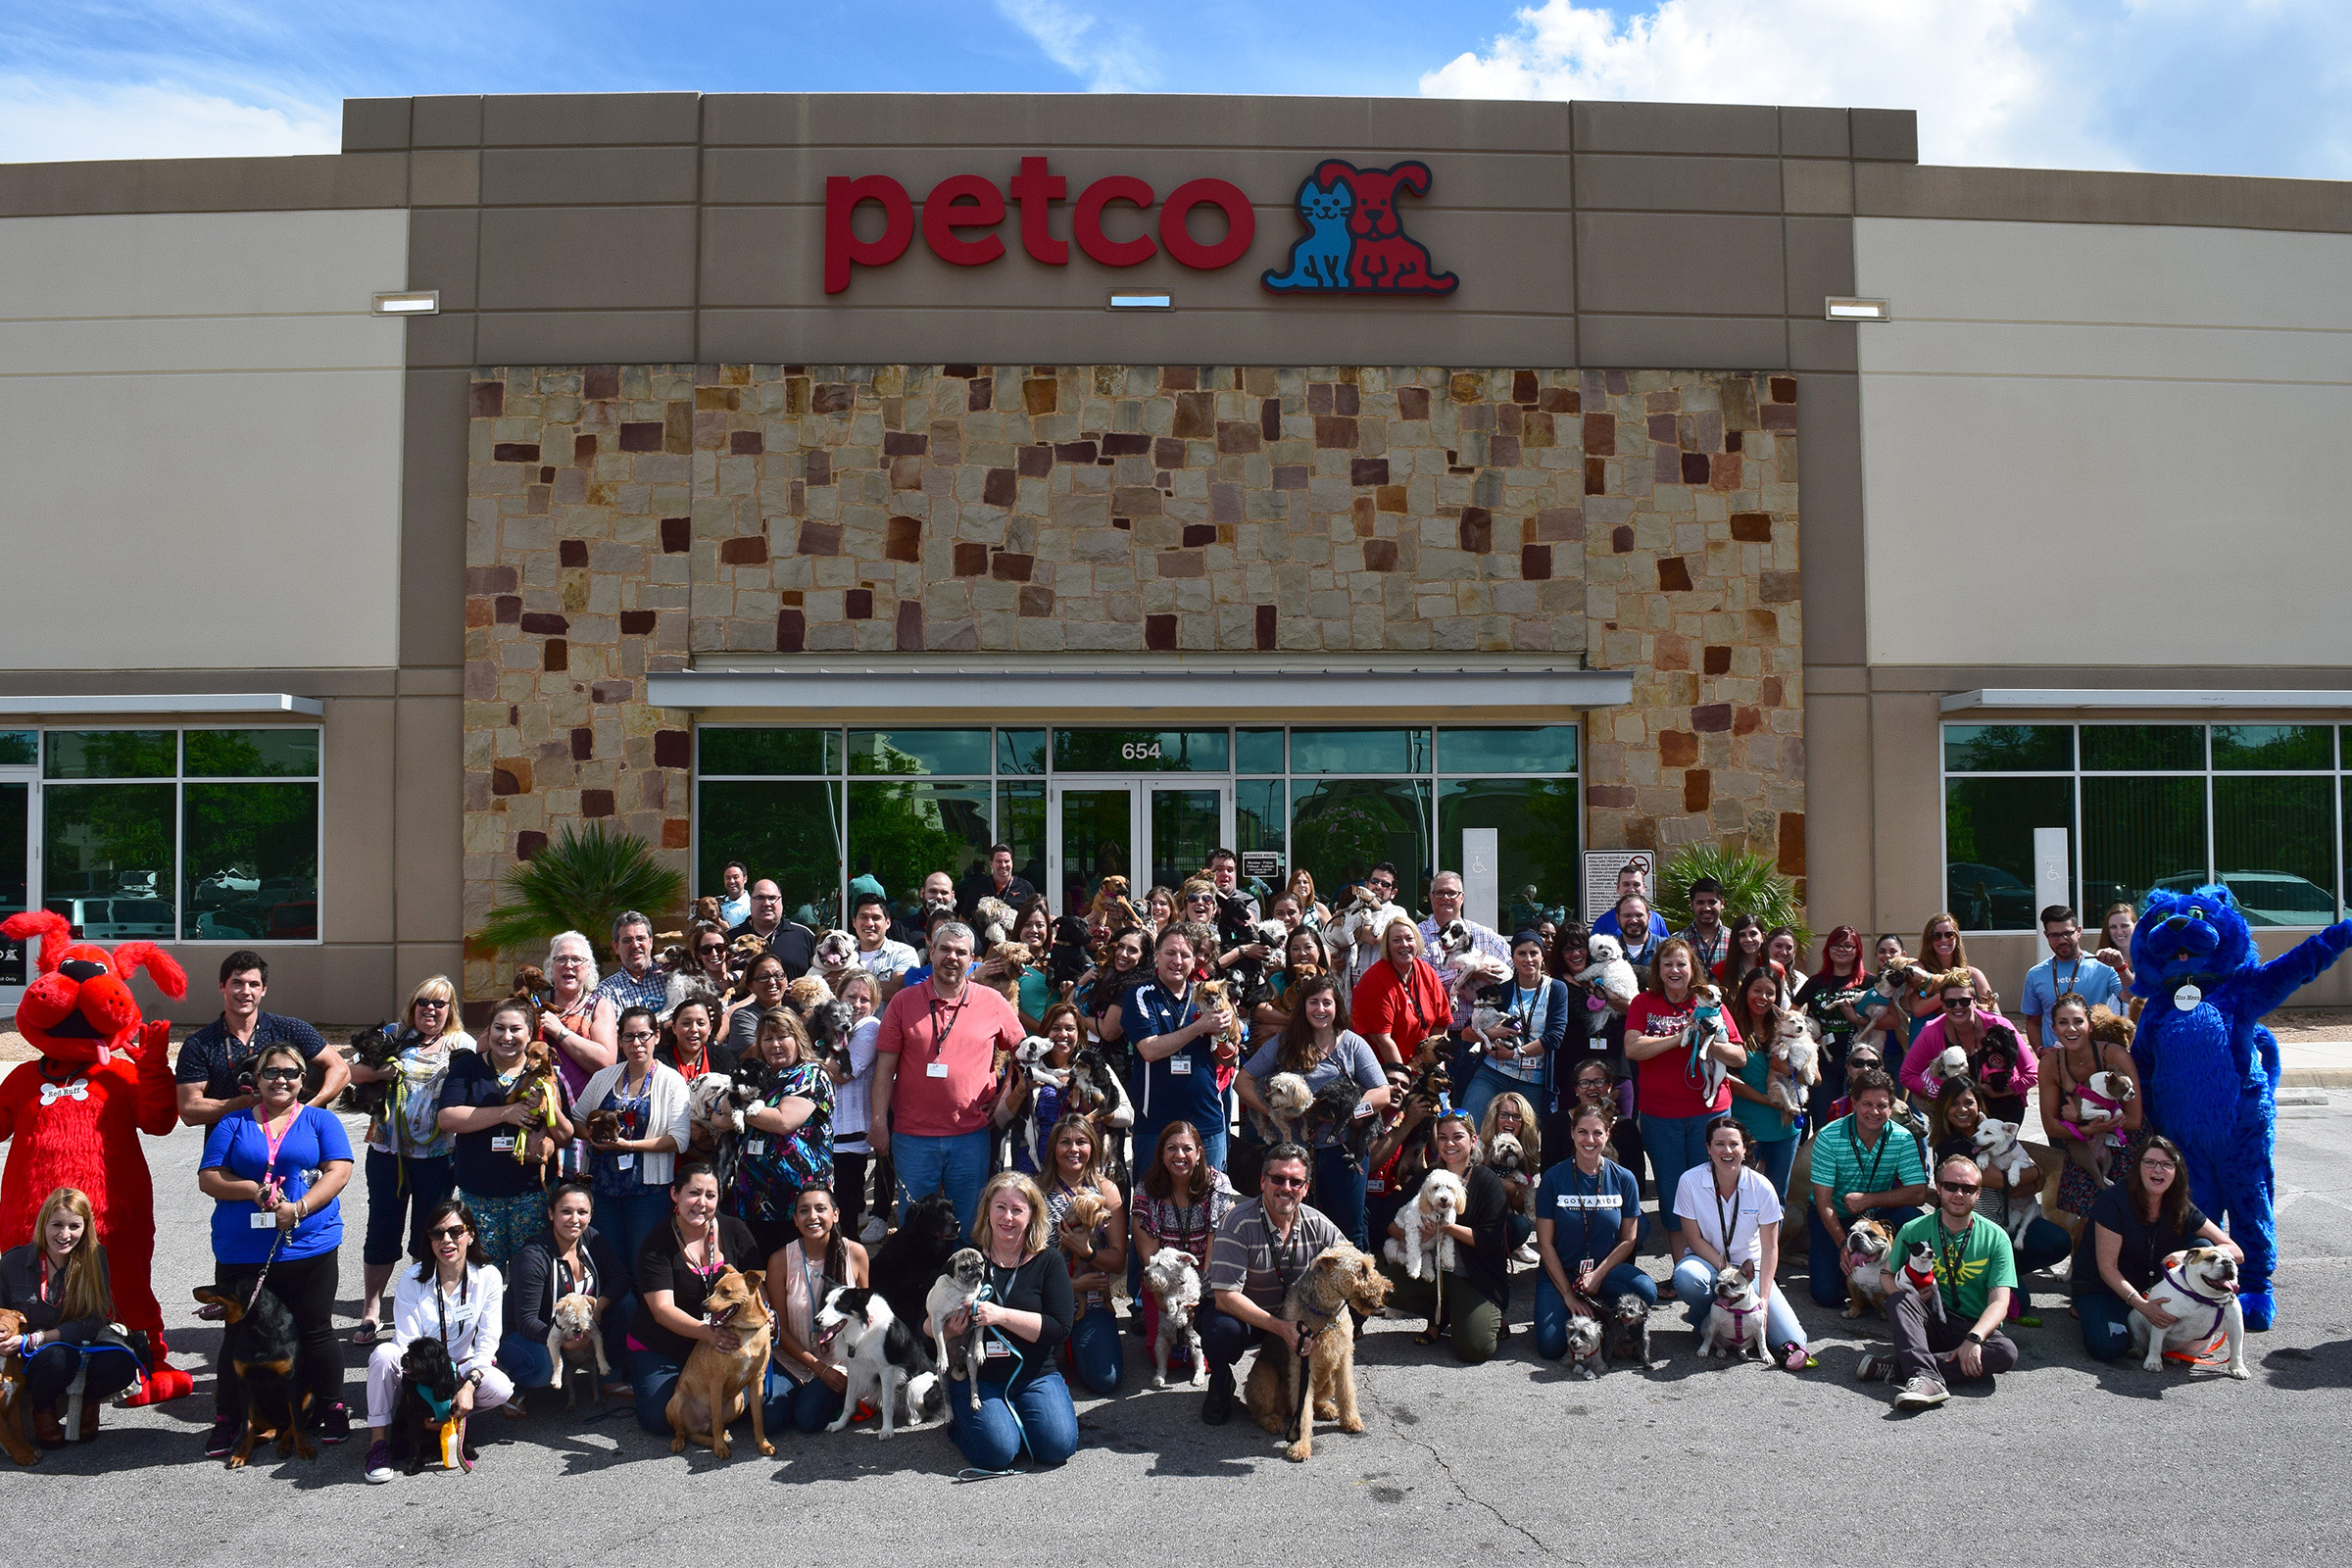 Petco partnered with Purina to celebrate #petsatwork by encouraging employees to bring their pet to work in attempt to help break the world record for Most Pets in the Workplace in One Day